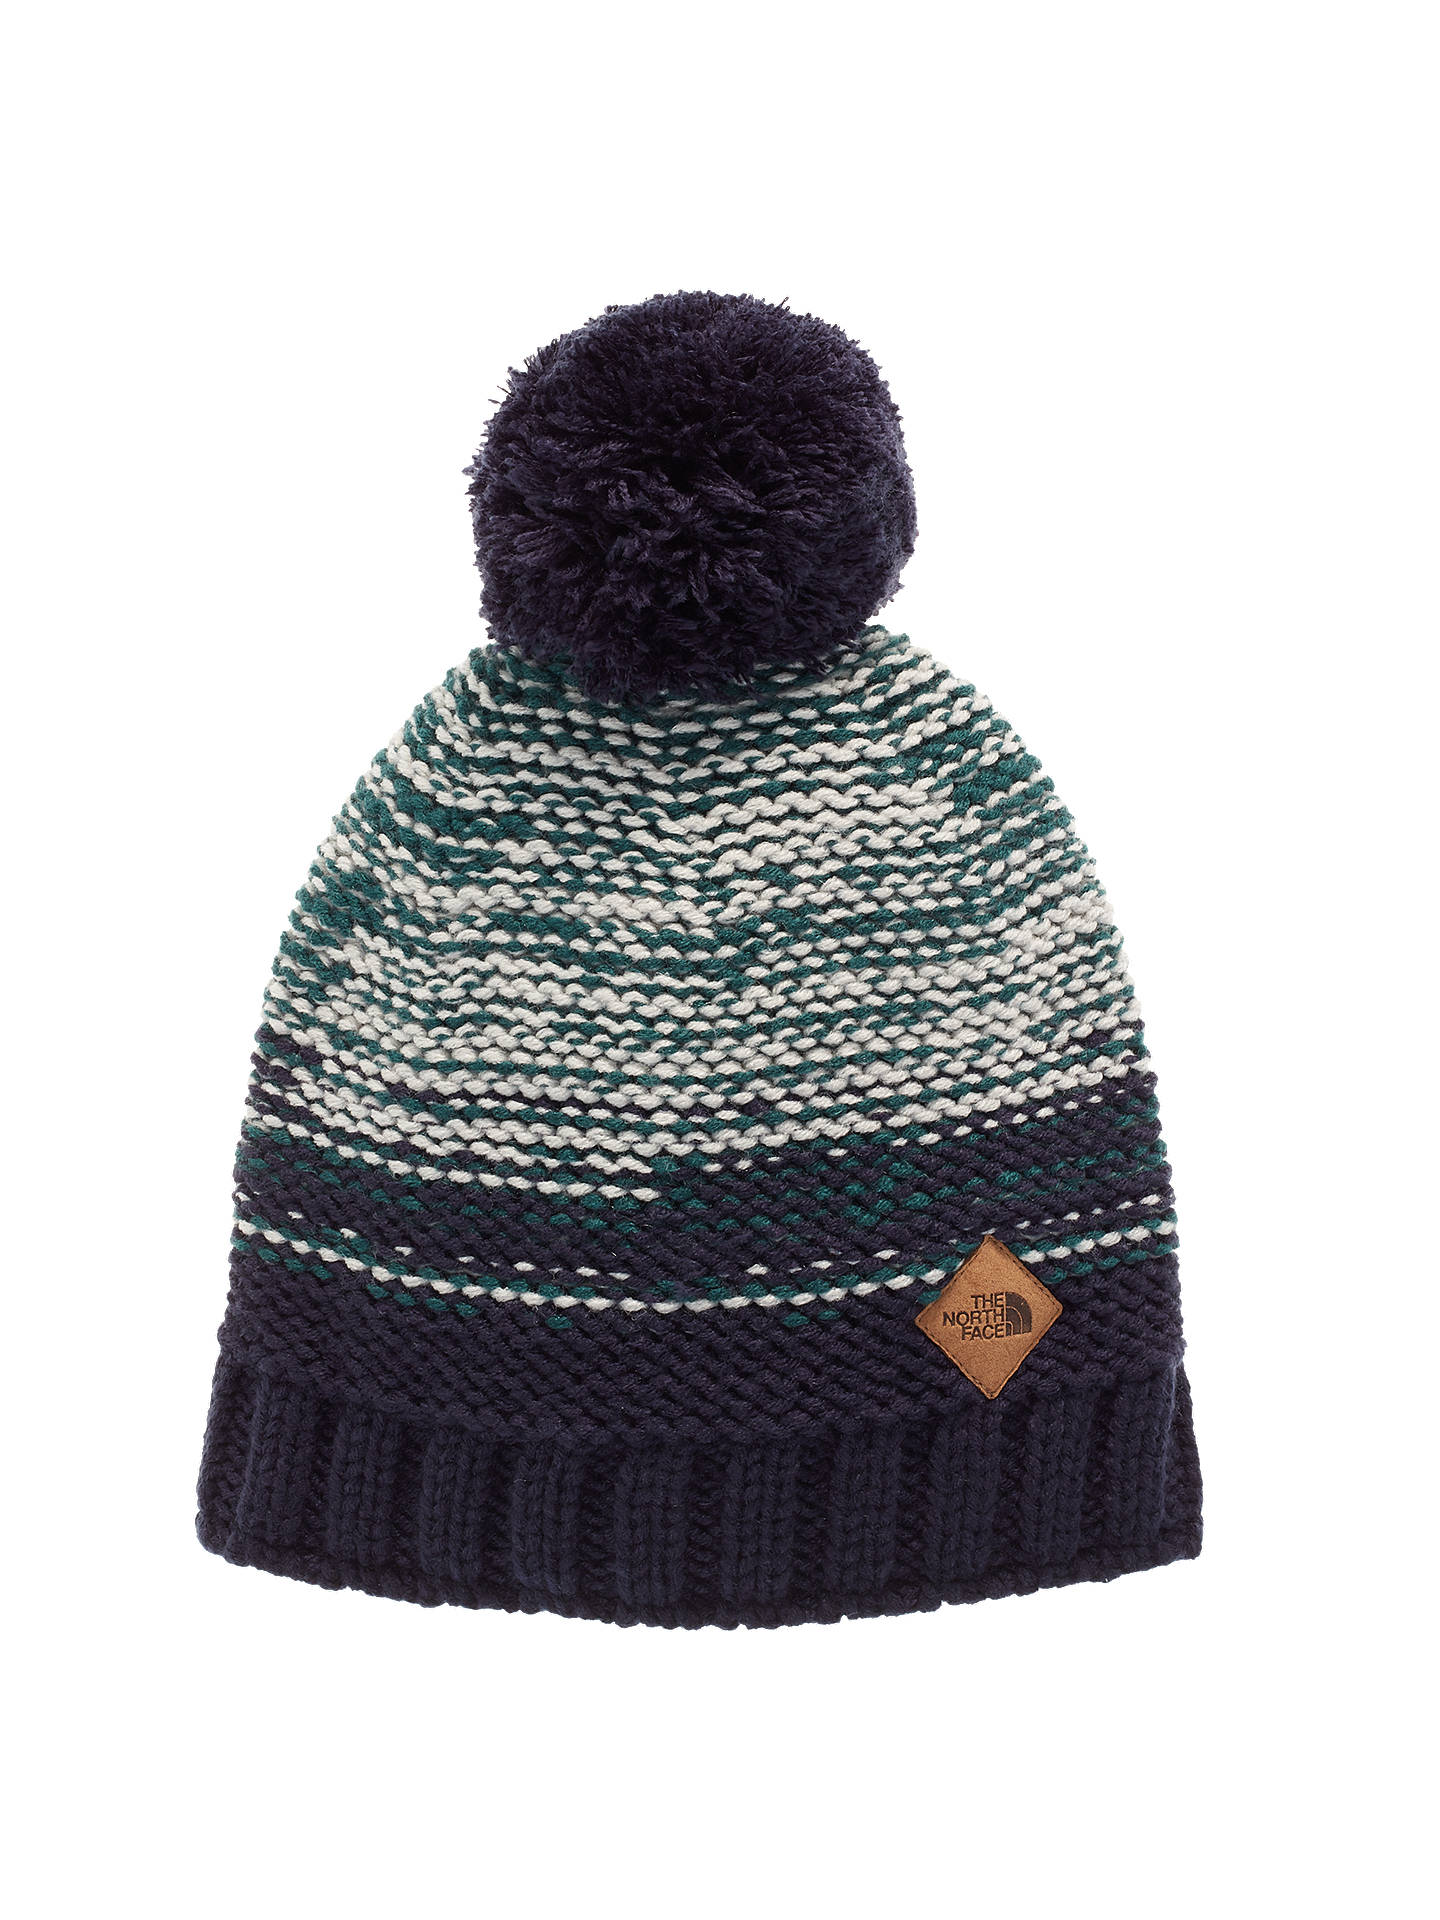 eb0e4326a71 Buy The North Face Antlers Beanie